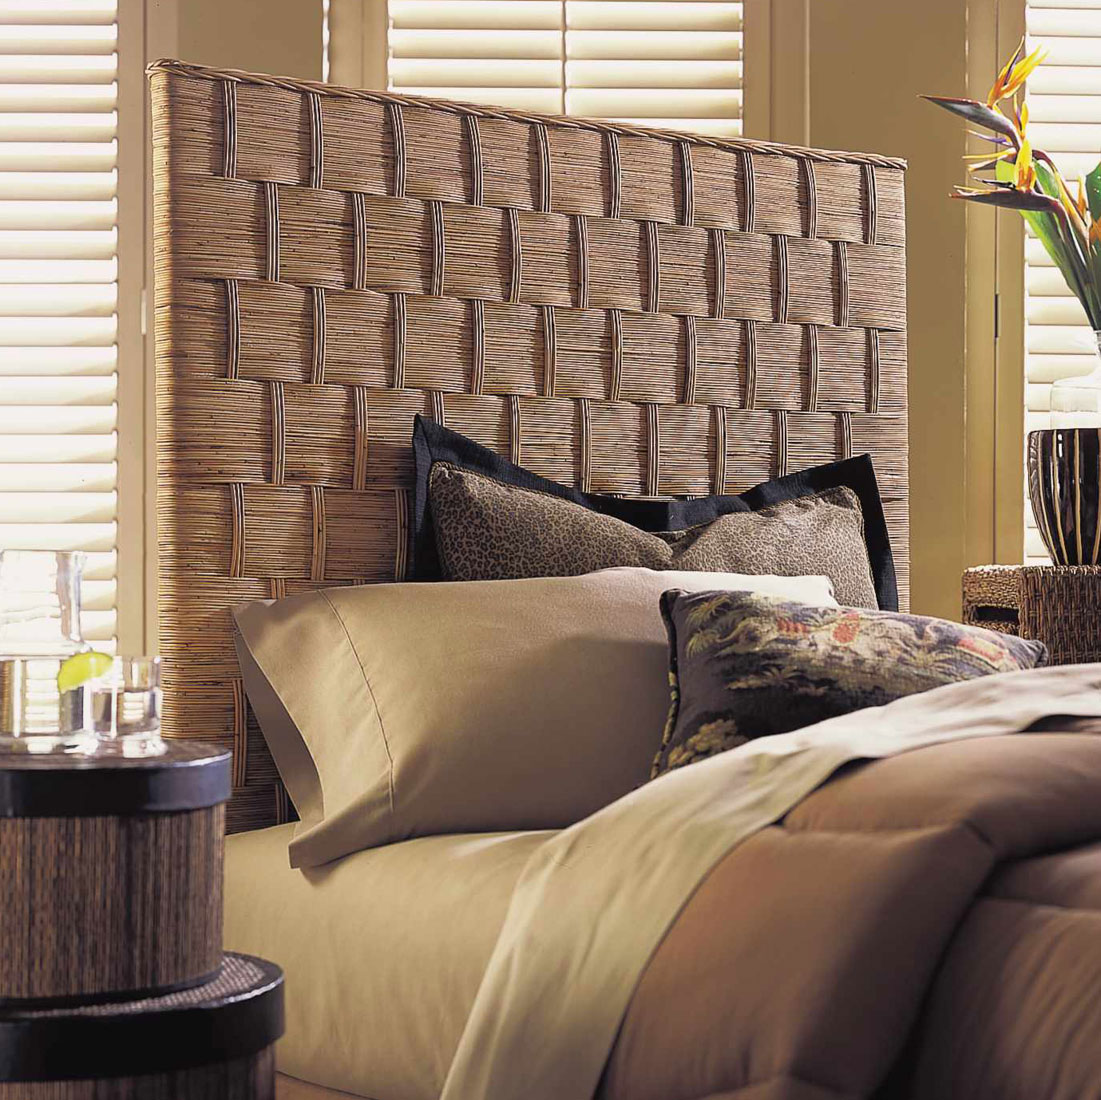 Decorative Headboards For Beds decorative headboard for awesome feeling even when you sleep